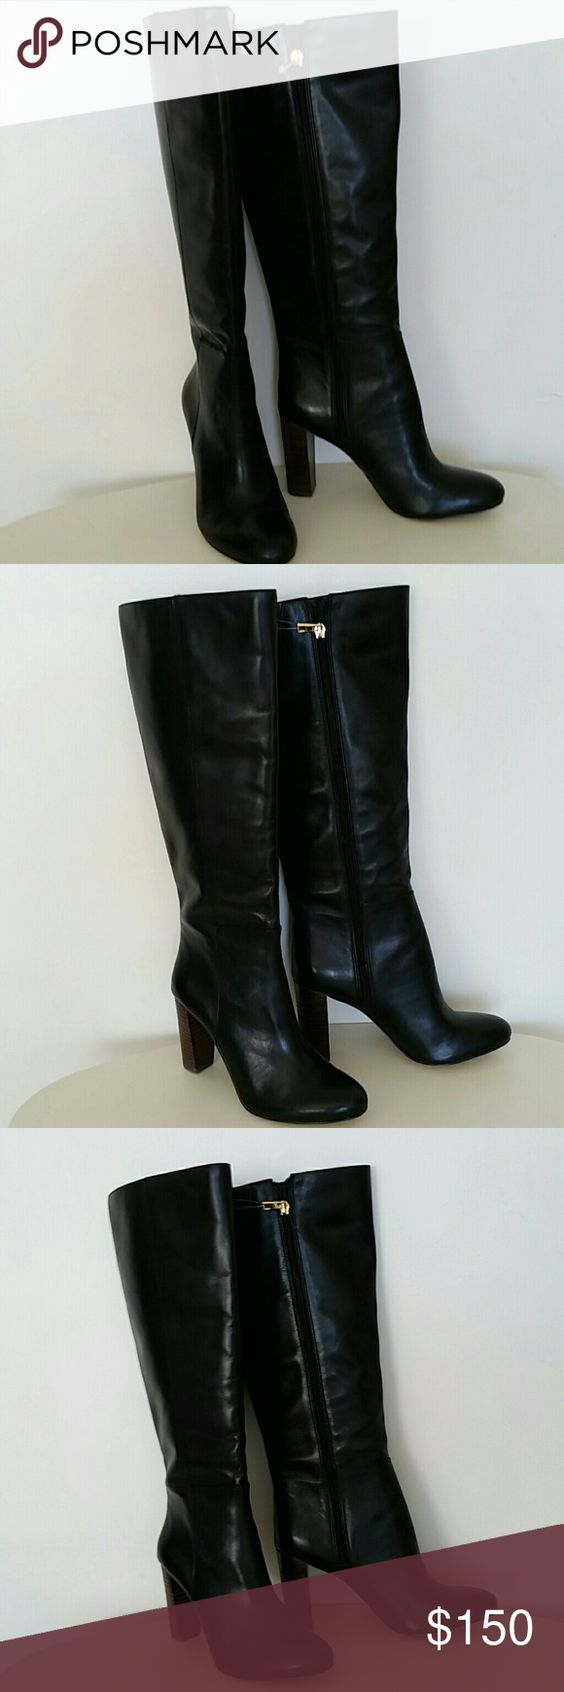 Ann Taylor boots upper leather Ann Taylor boots  store display upper leather  new never used no tags no box size 6 1/2 M Ann Taylor Shoes Over the Knee Boots